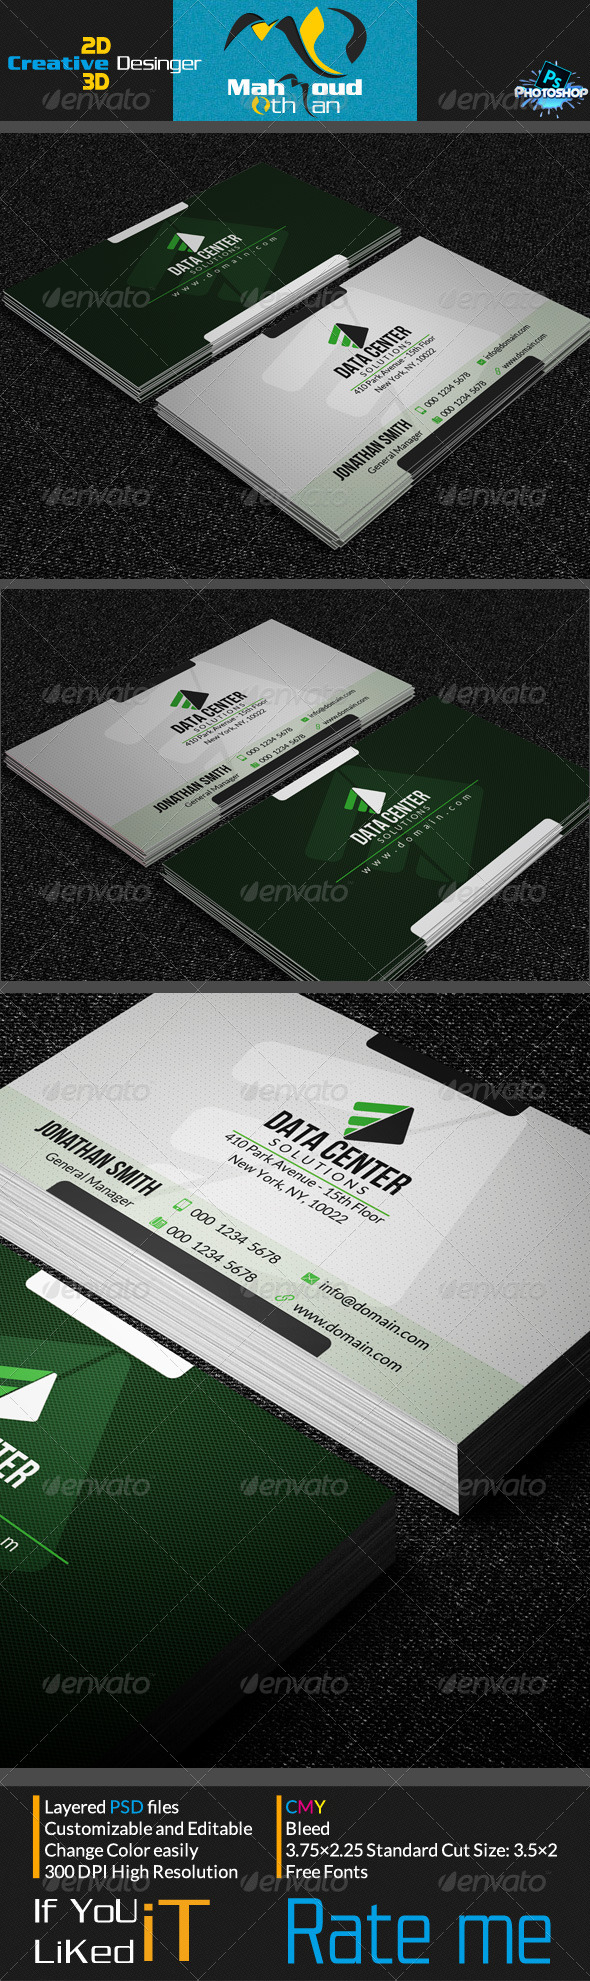 GraphicRiver Corportae Business Card V07 7242864